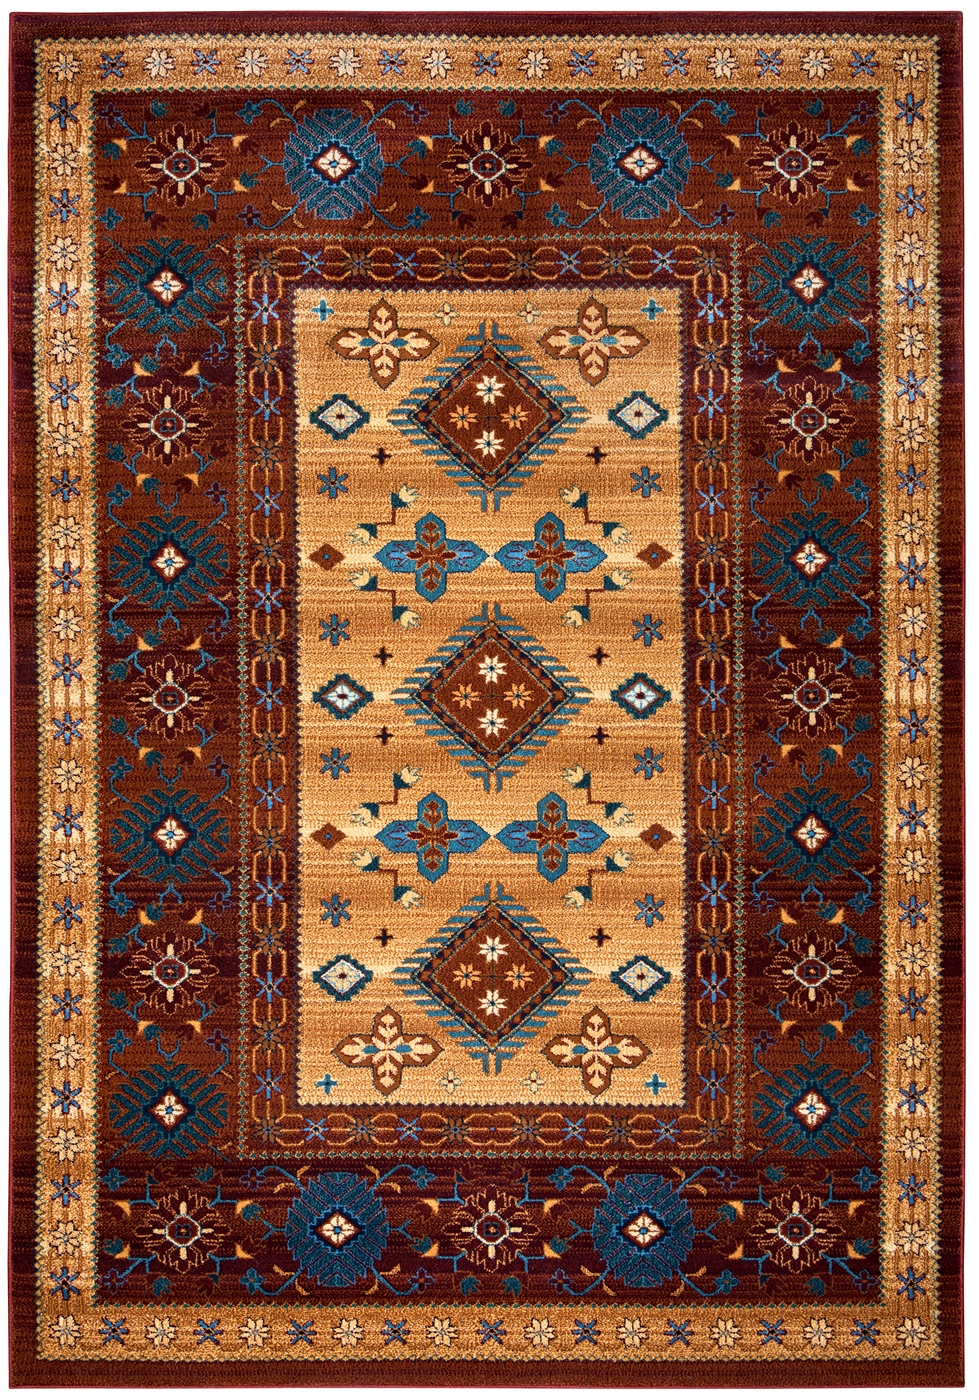 Bellevue Border Southwest Tribal Area Rug In Tan Blue